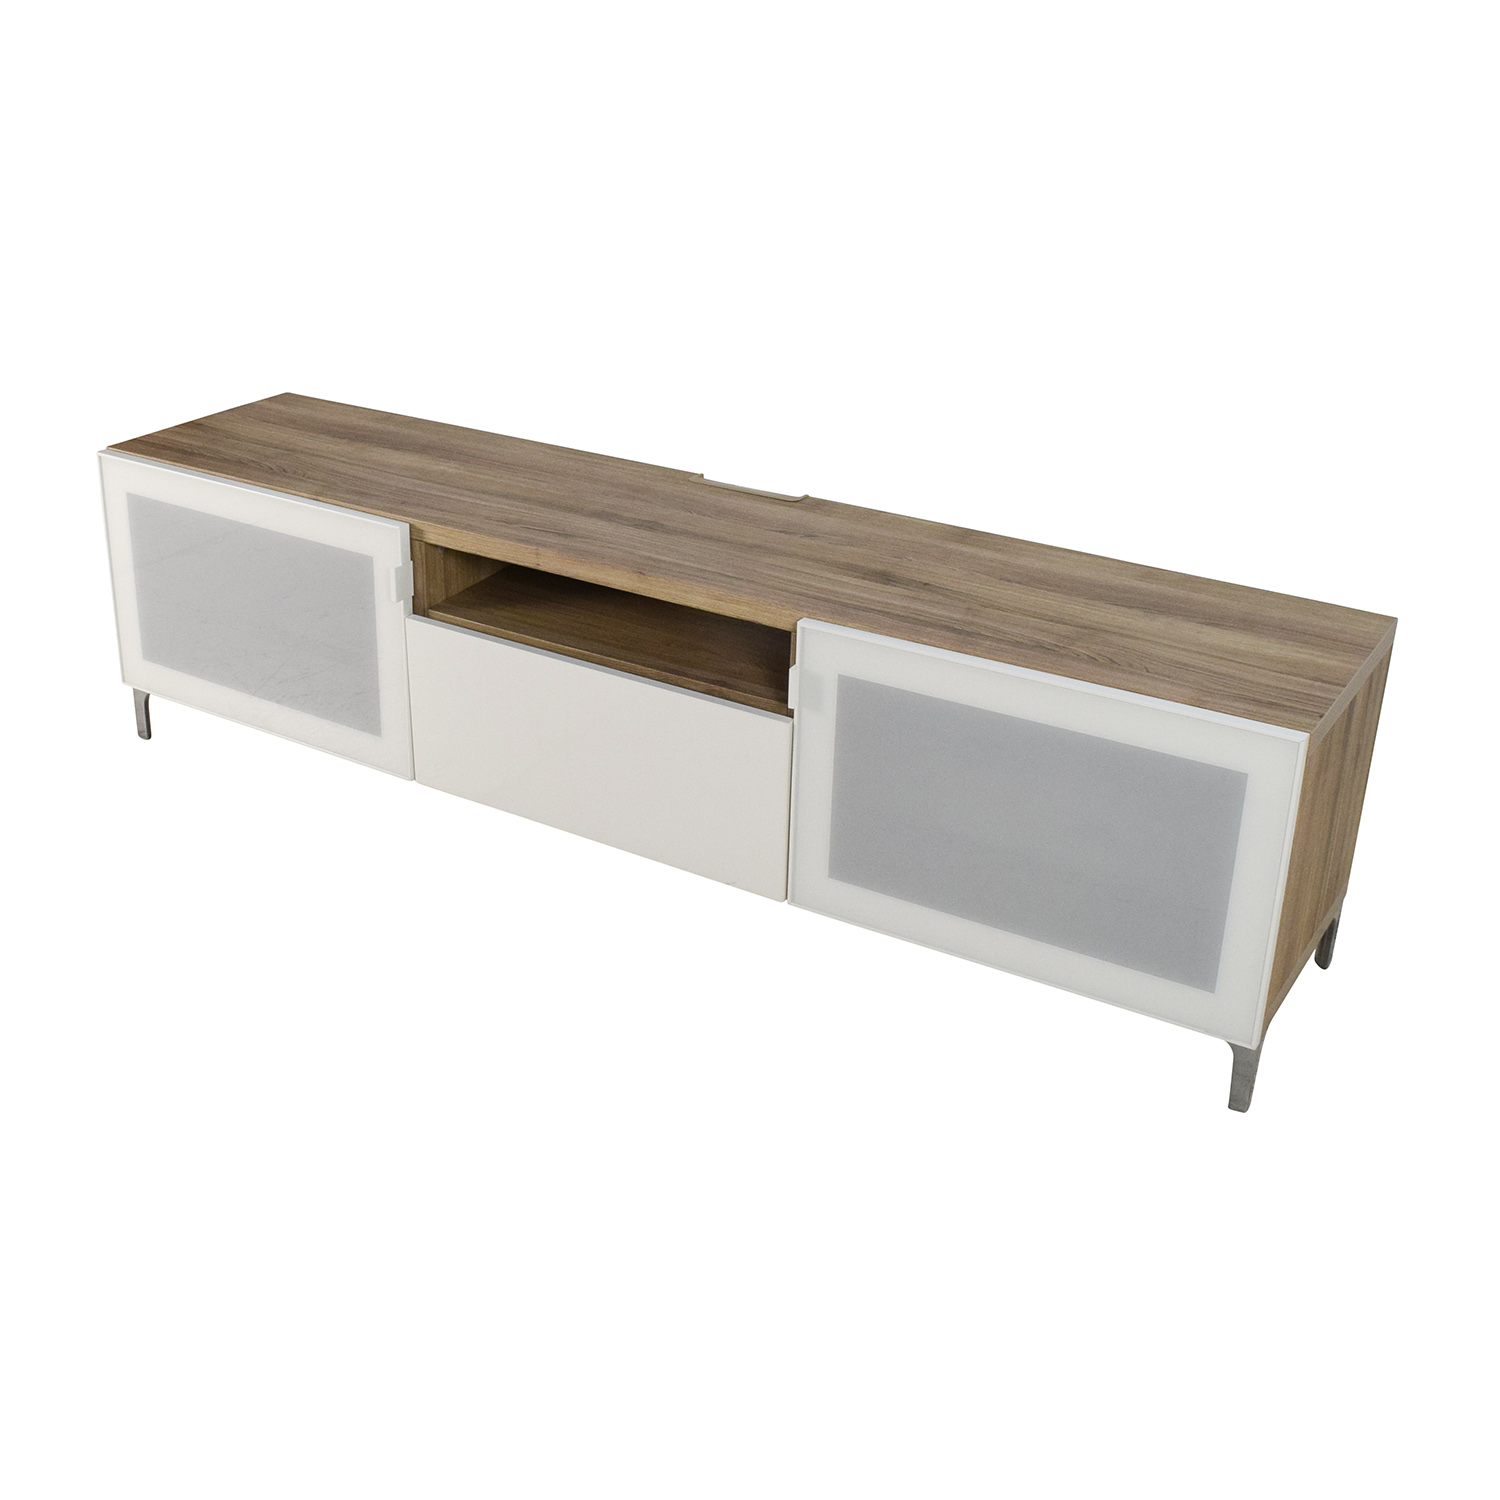 82 Off Ikea Ikea Besta Media Unit Storage